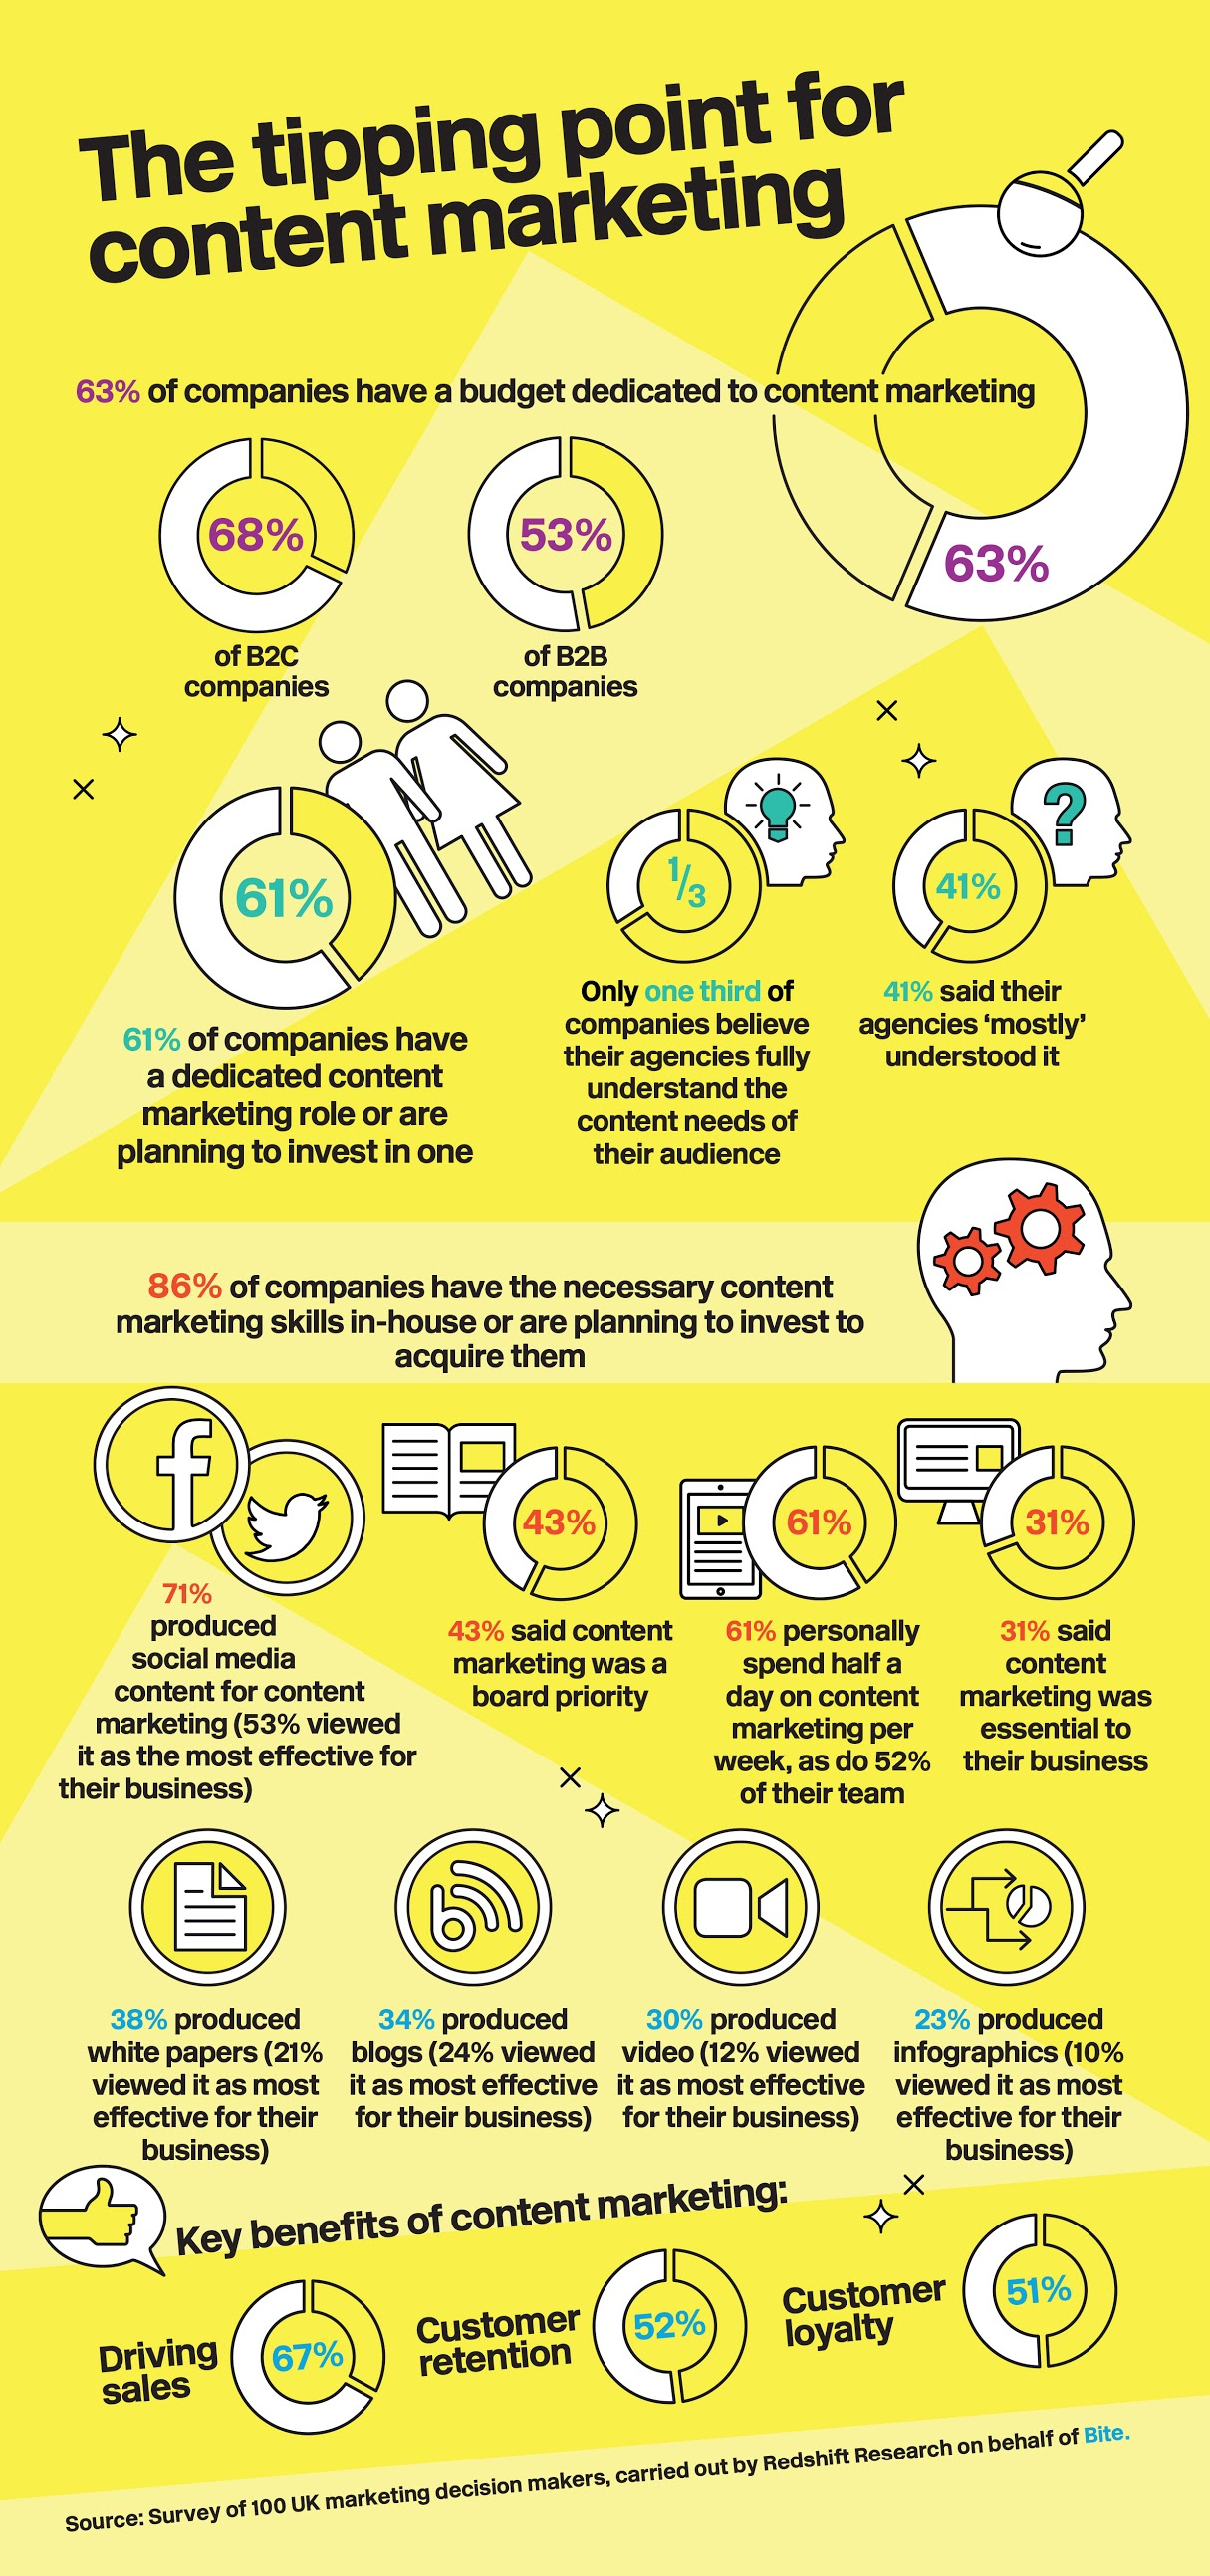 Infographic: only 28% of brands are able to measure the ROI of content marketing - what's your content marketing strategy